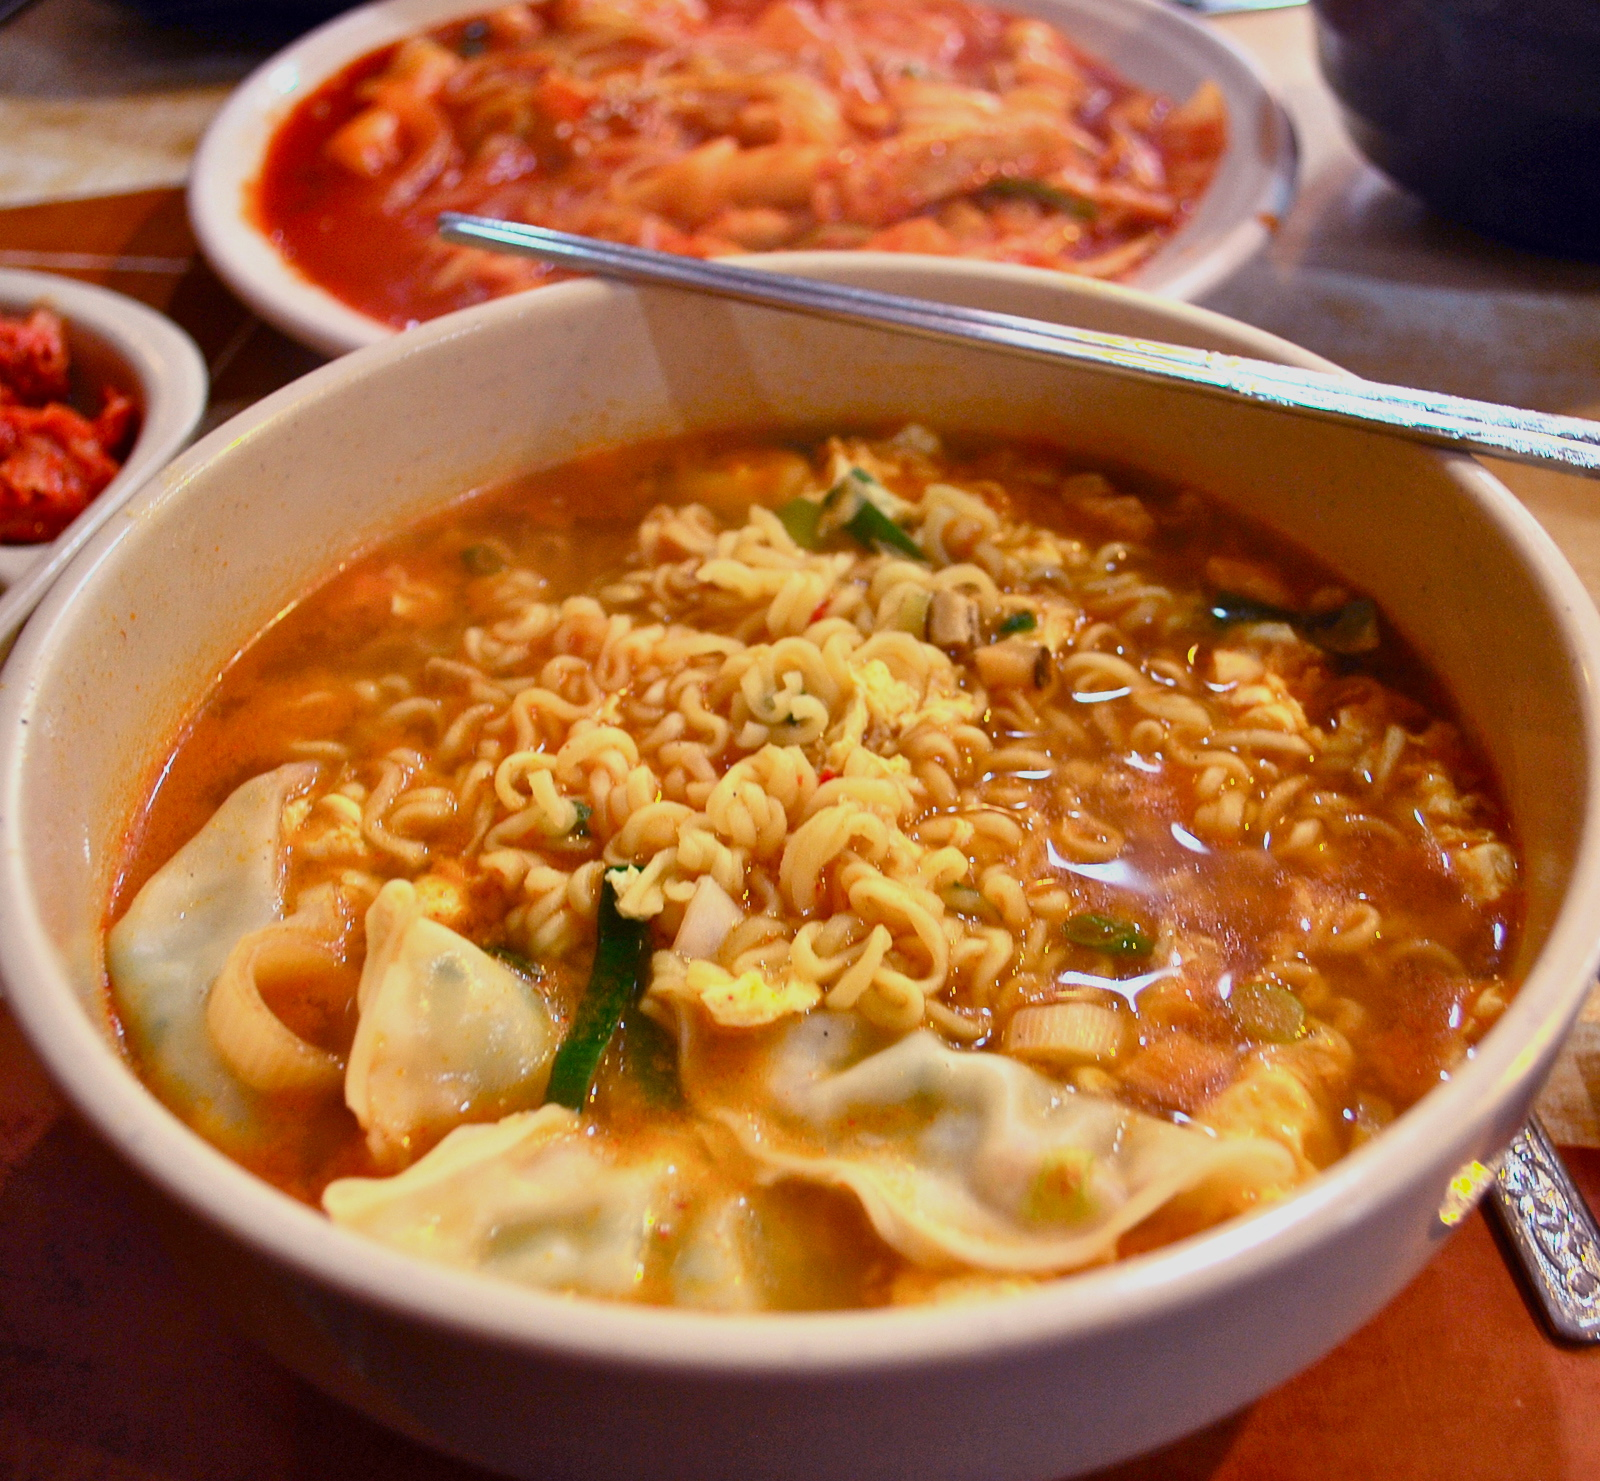 Korean ramen noodles with dumplings